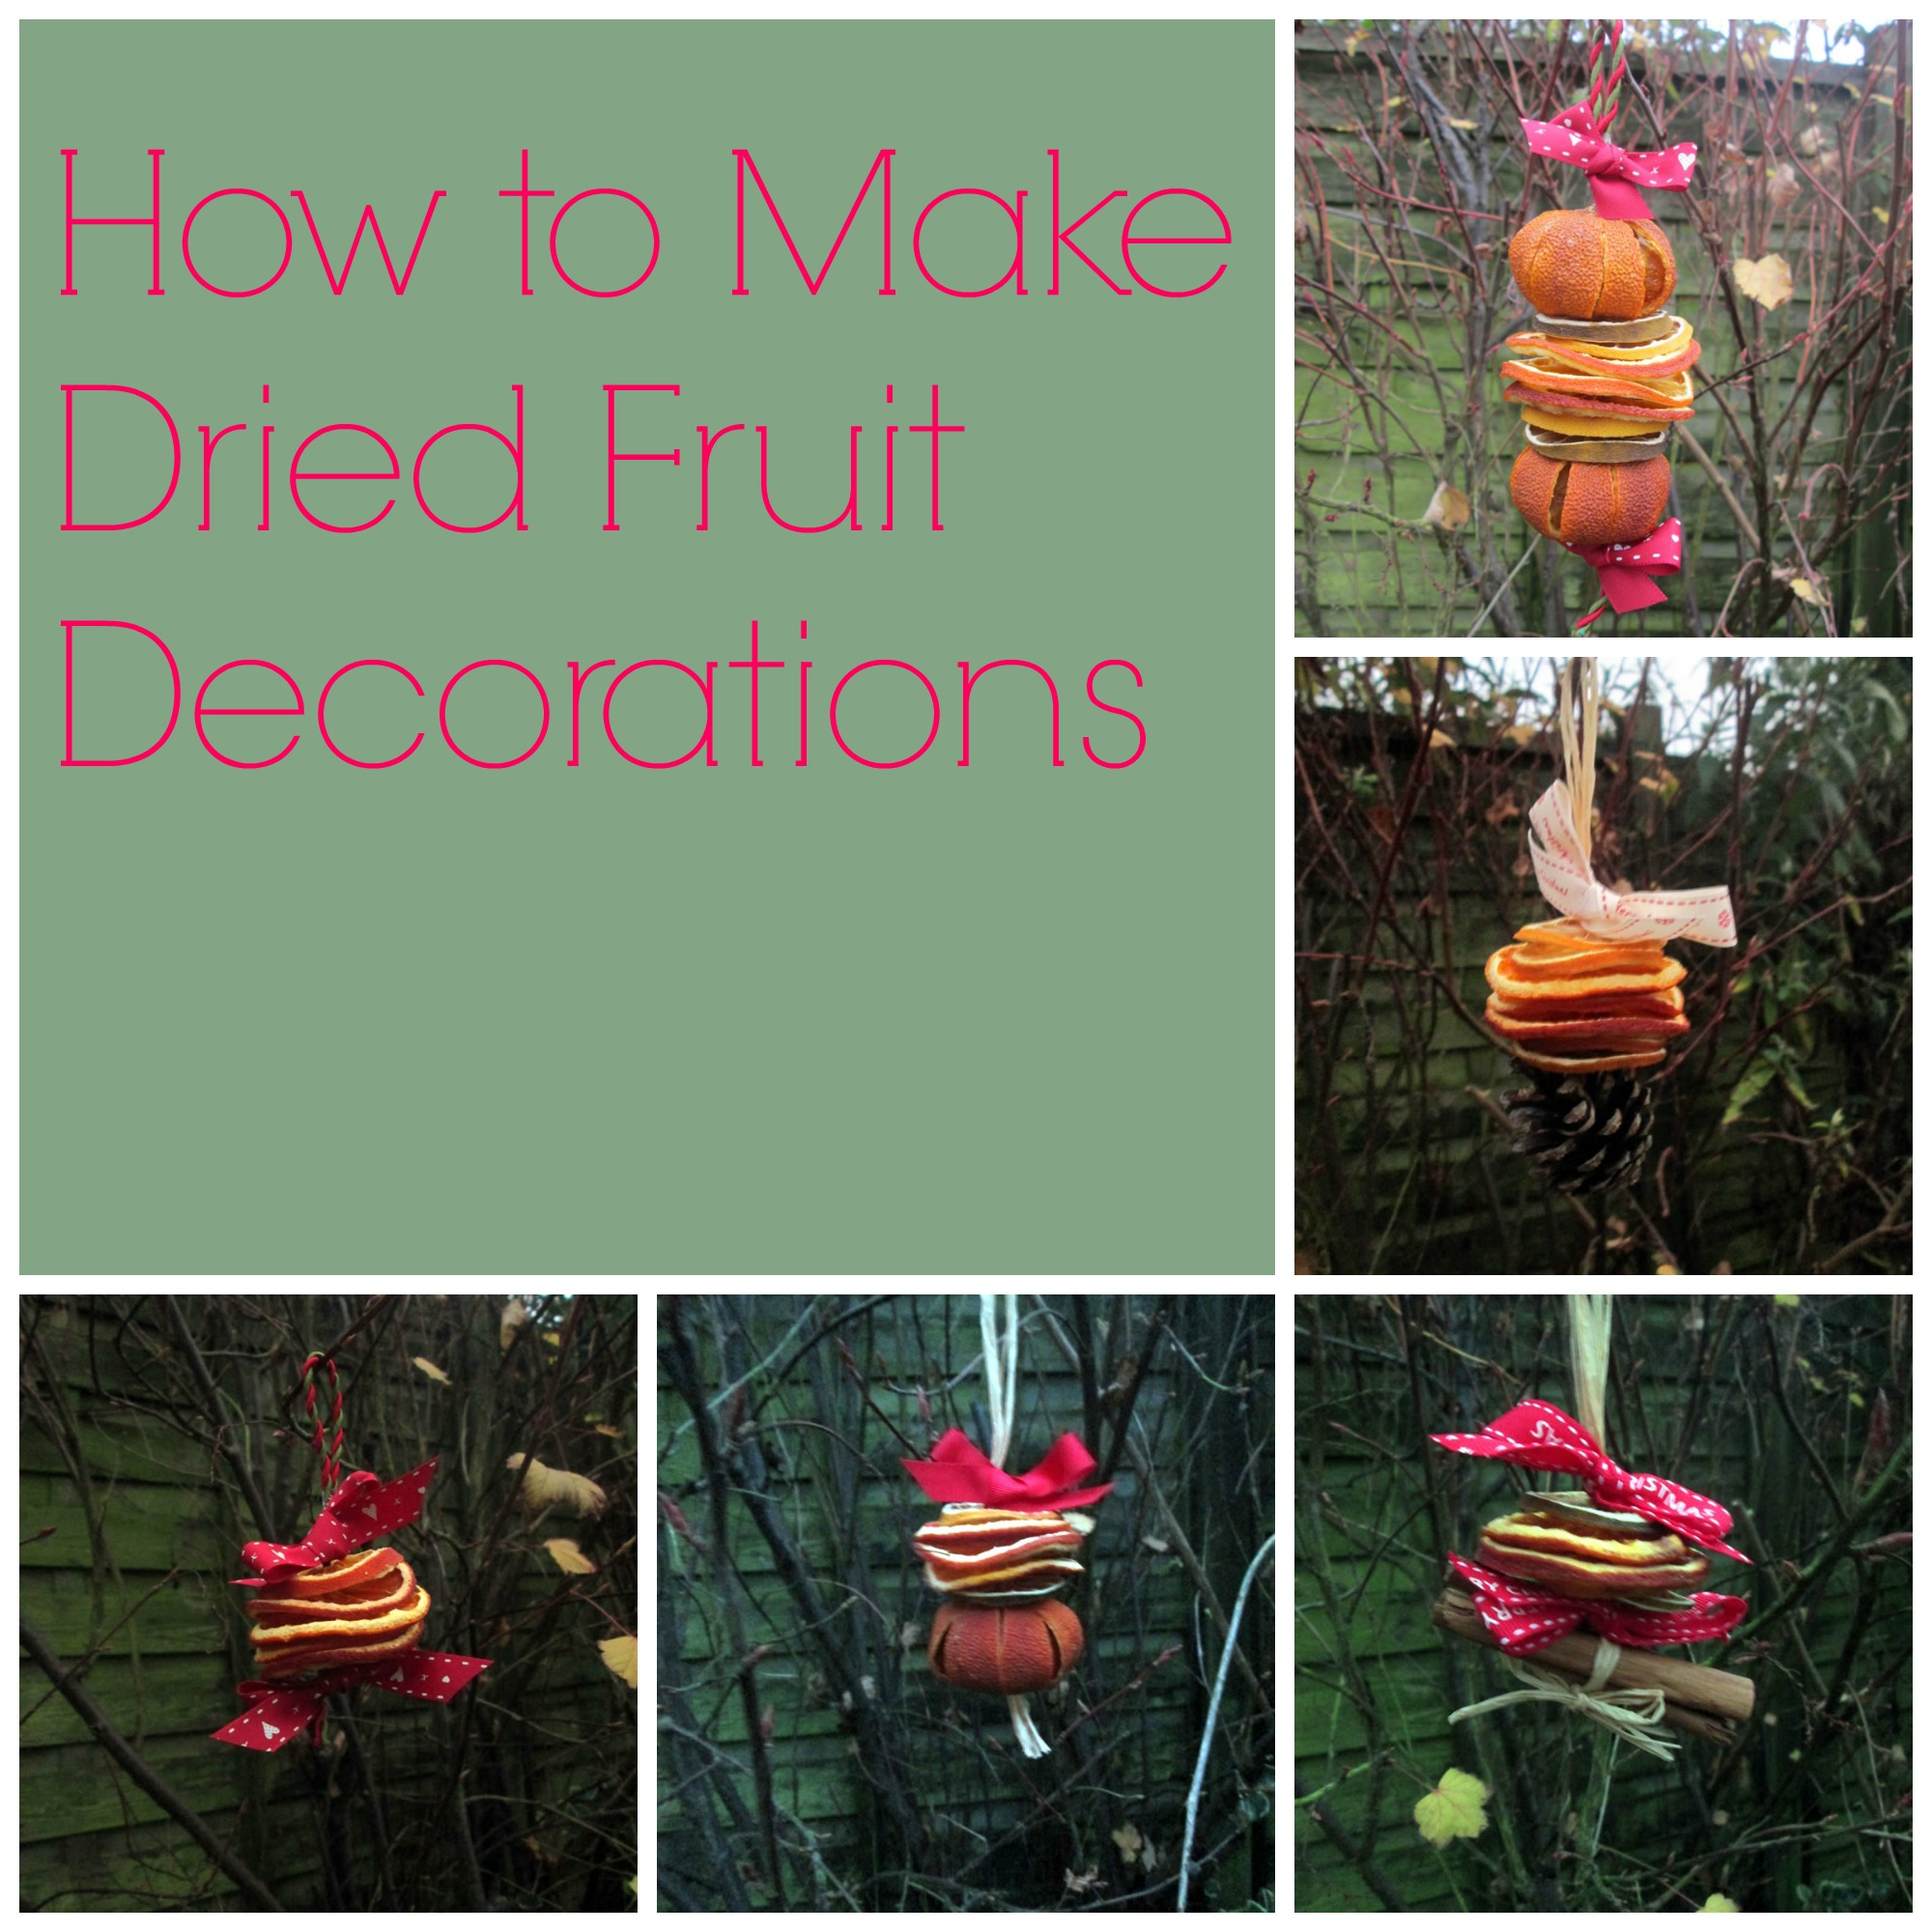 Dried Fruit Decorations -   Christmas Craft Tutorials